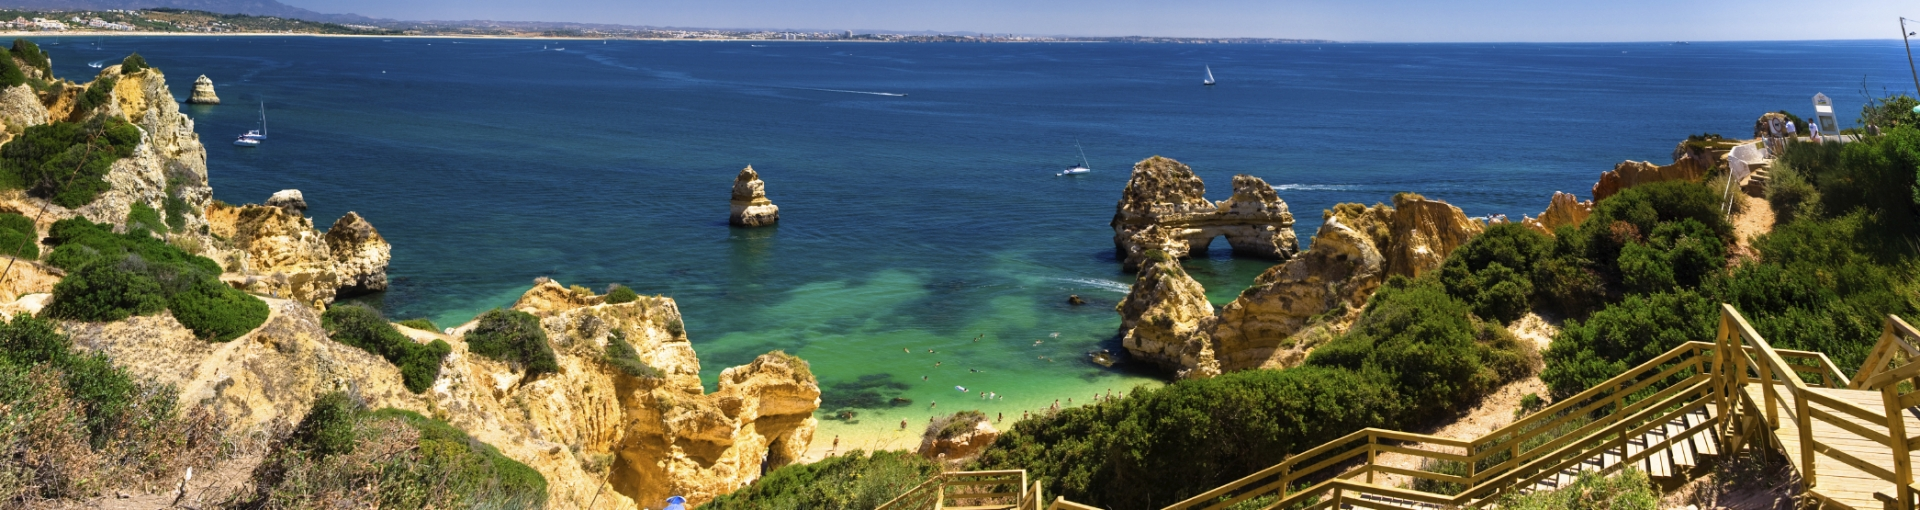 Algarve, part of Portugal, travel target, verry nice